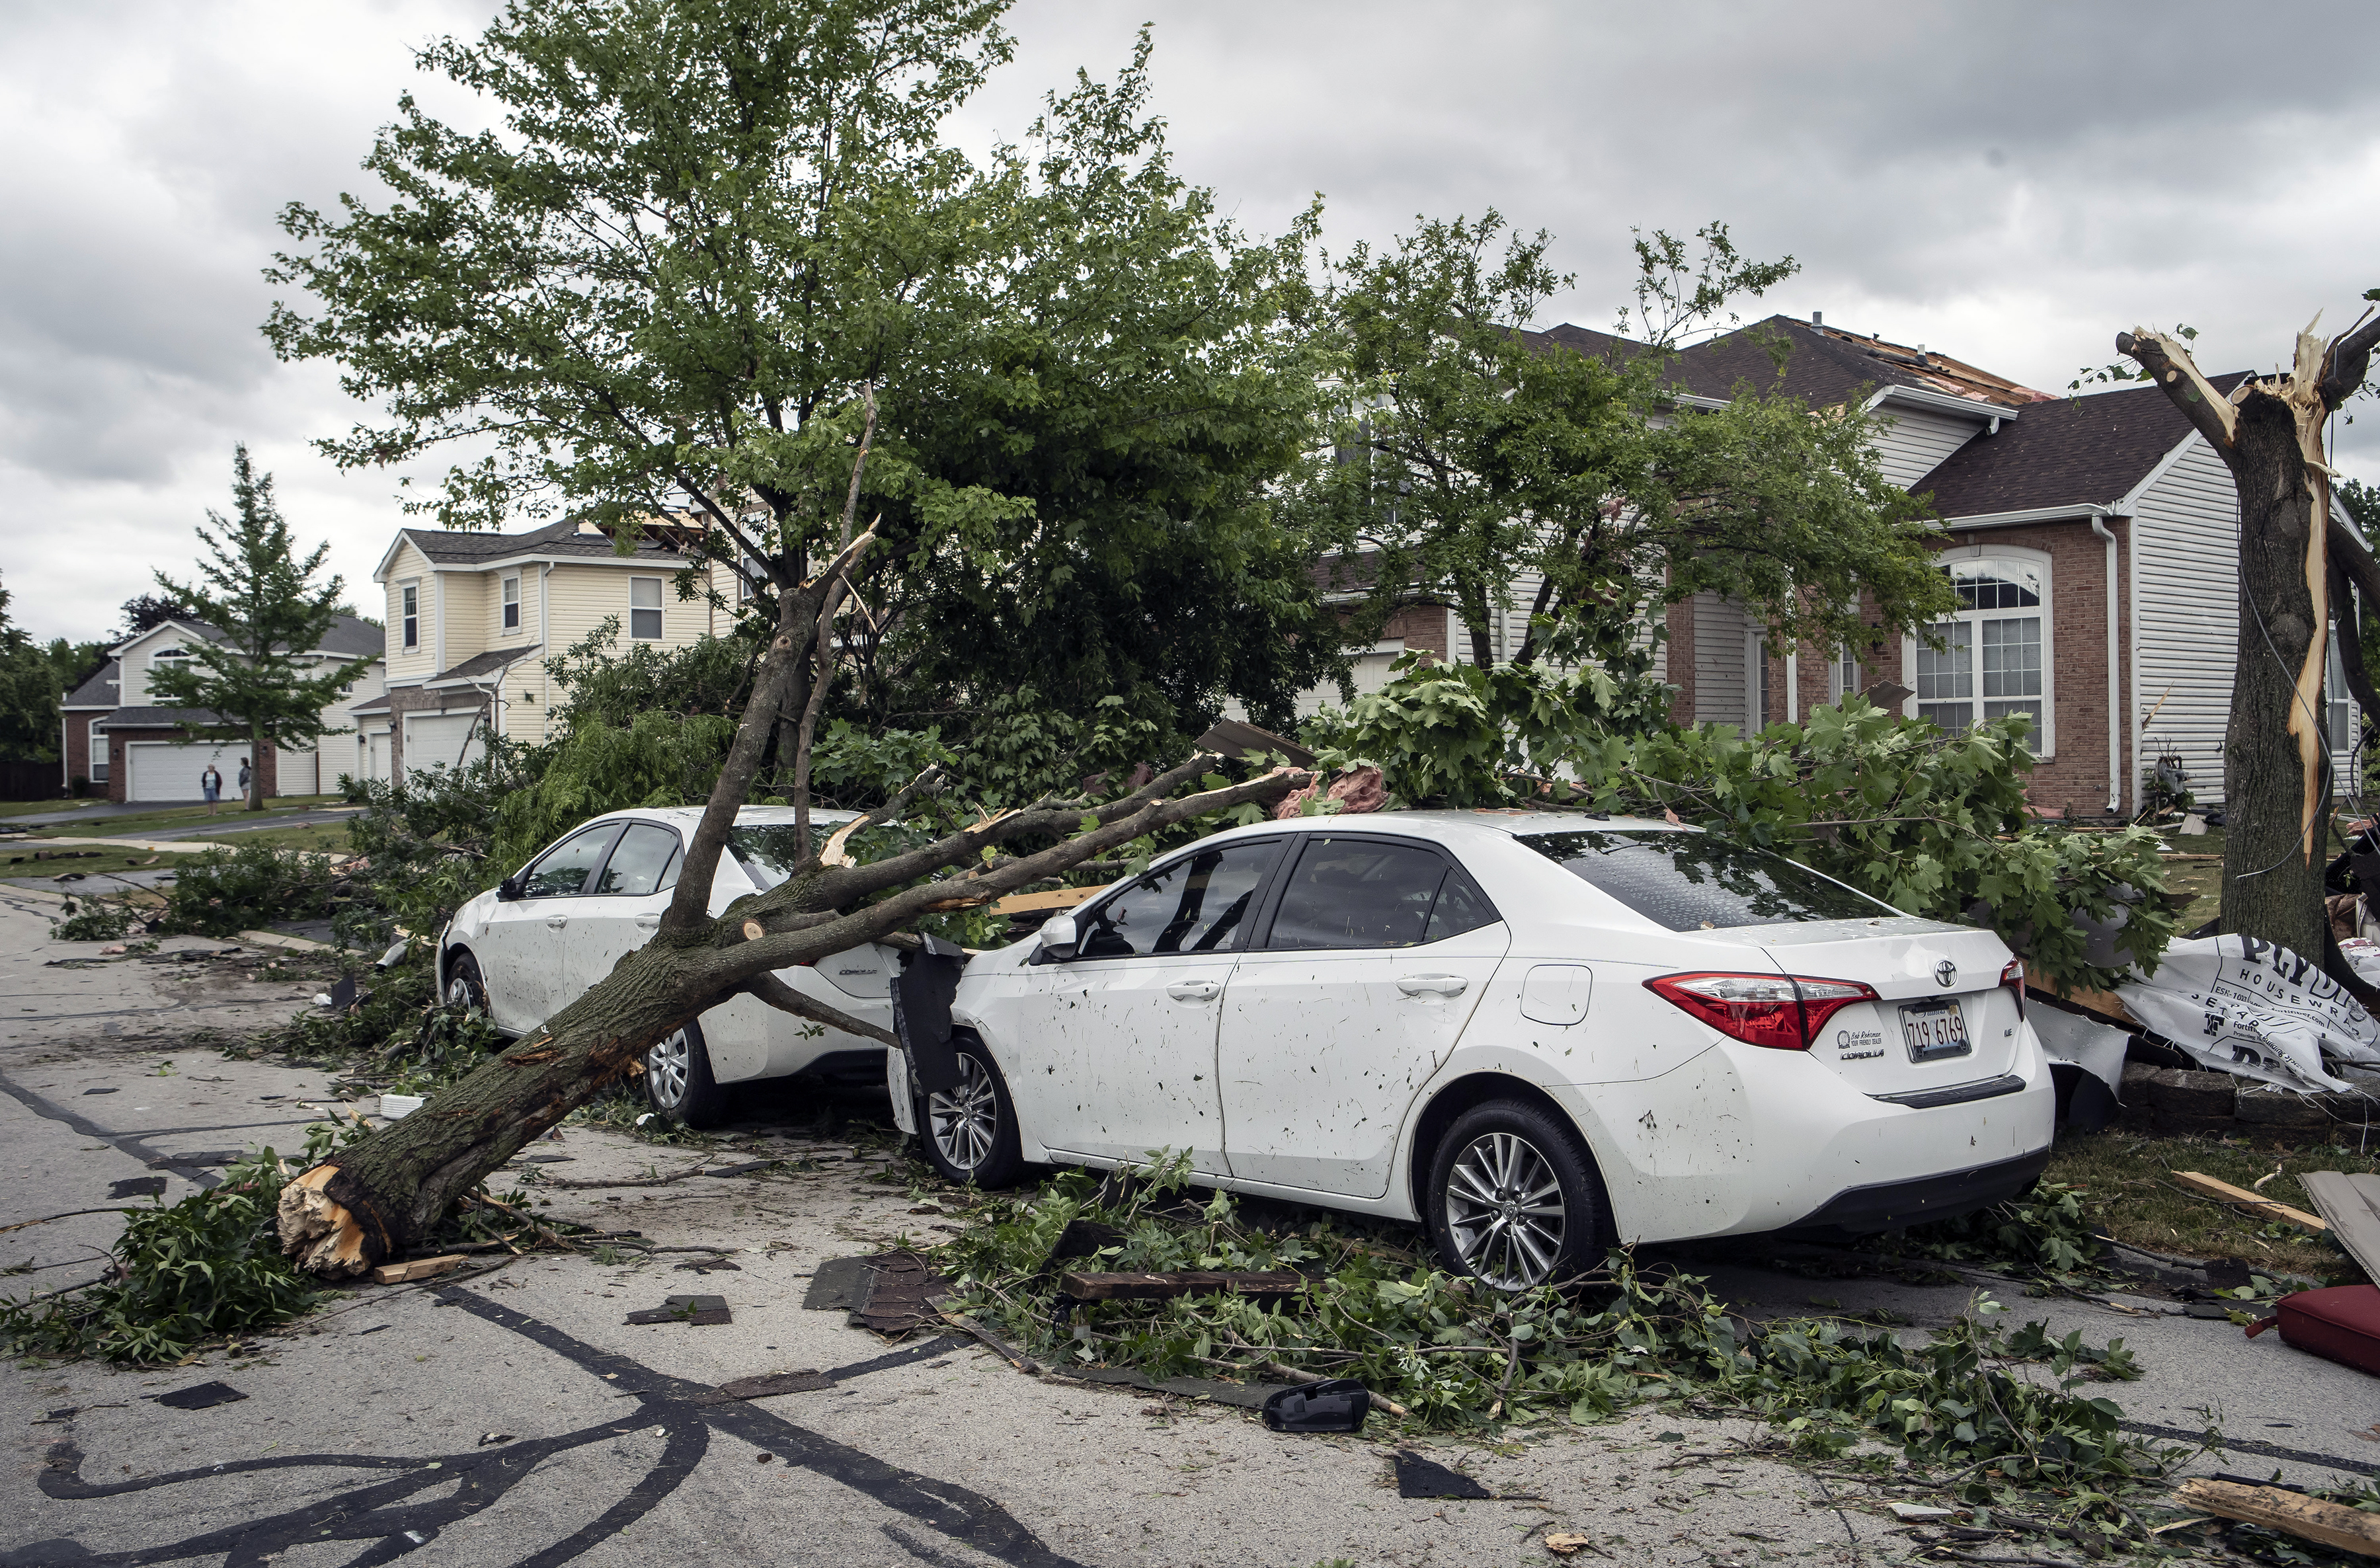 Damaged cars, trees and homes are shown in Naperville, Ill., Monday, June 21, 2021.